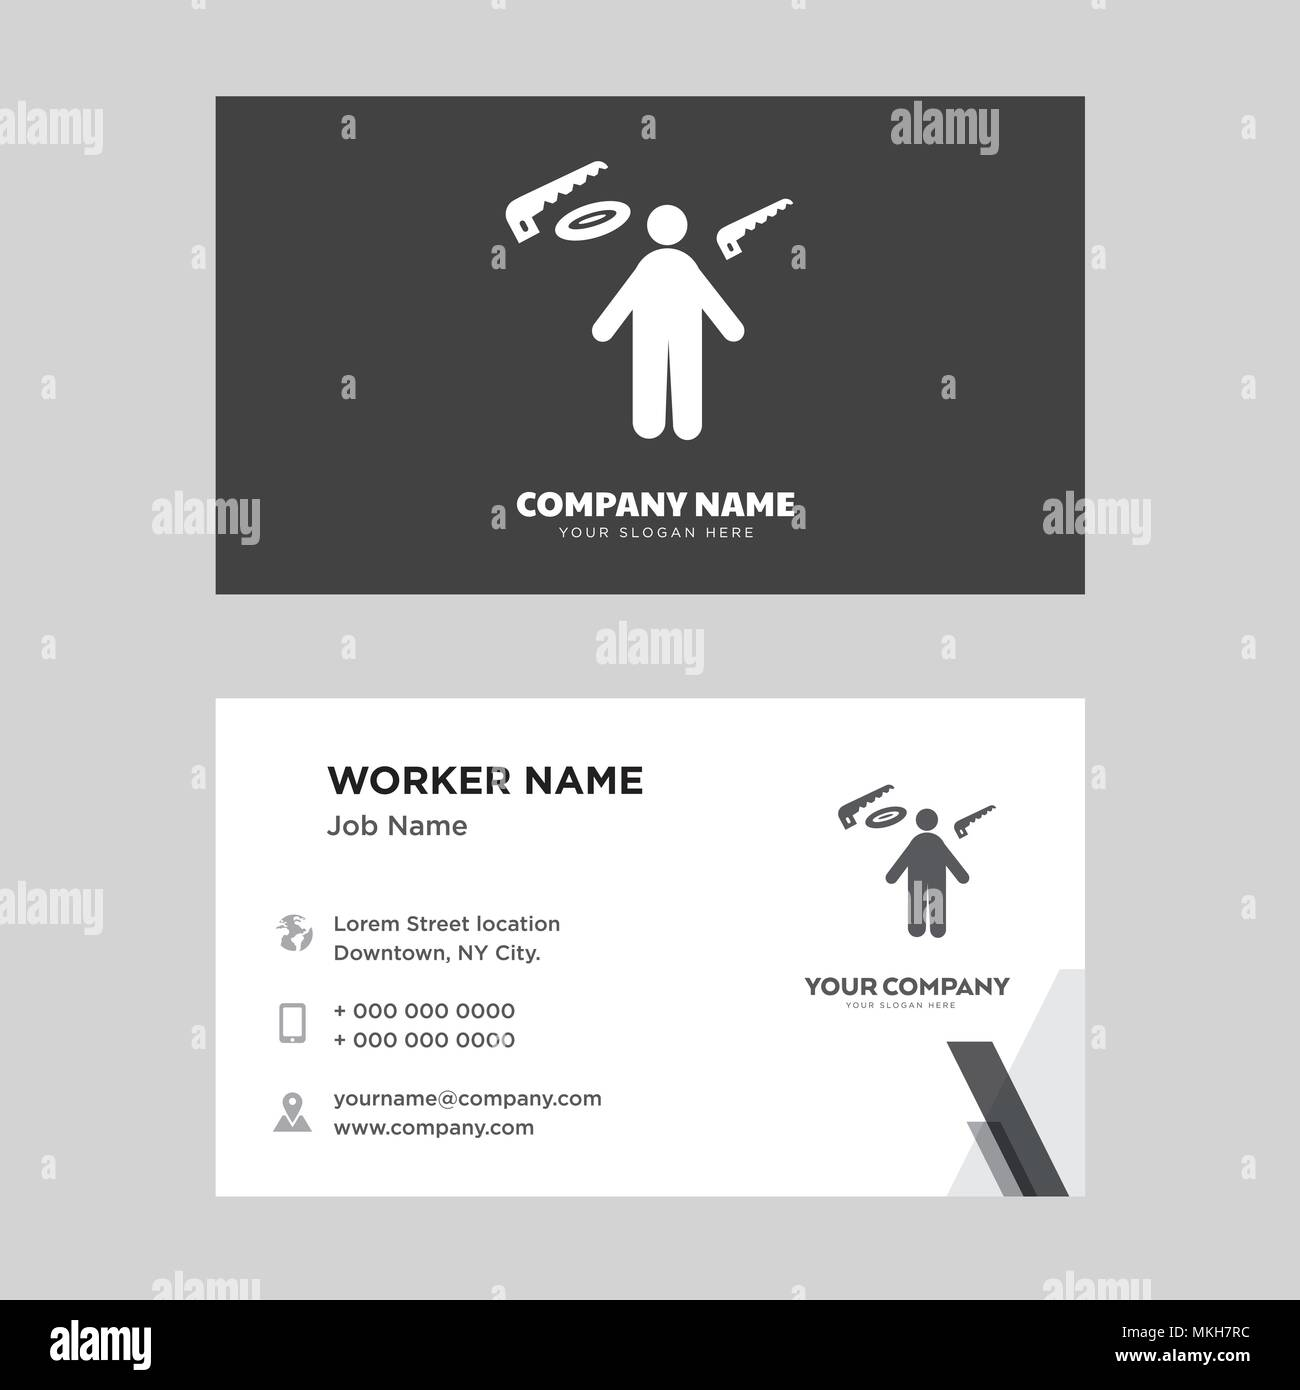 Carpenter business card design template visiting for your company carpenter business card design template visiting for your company modern horizontal identity card vector colourmoves